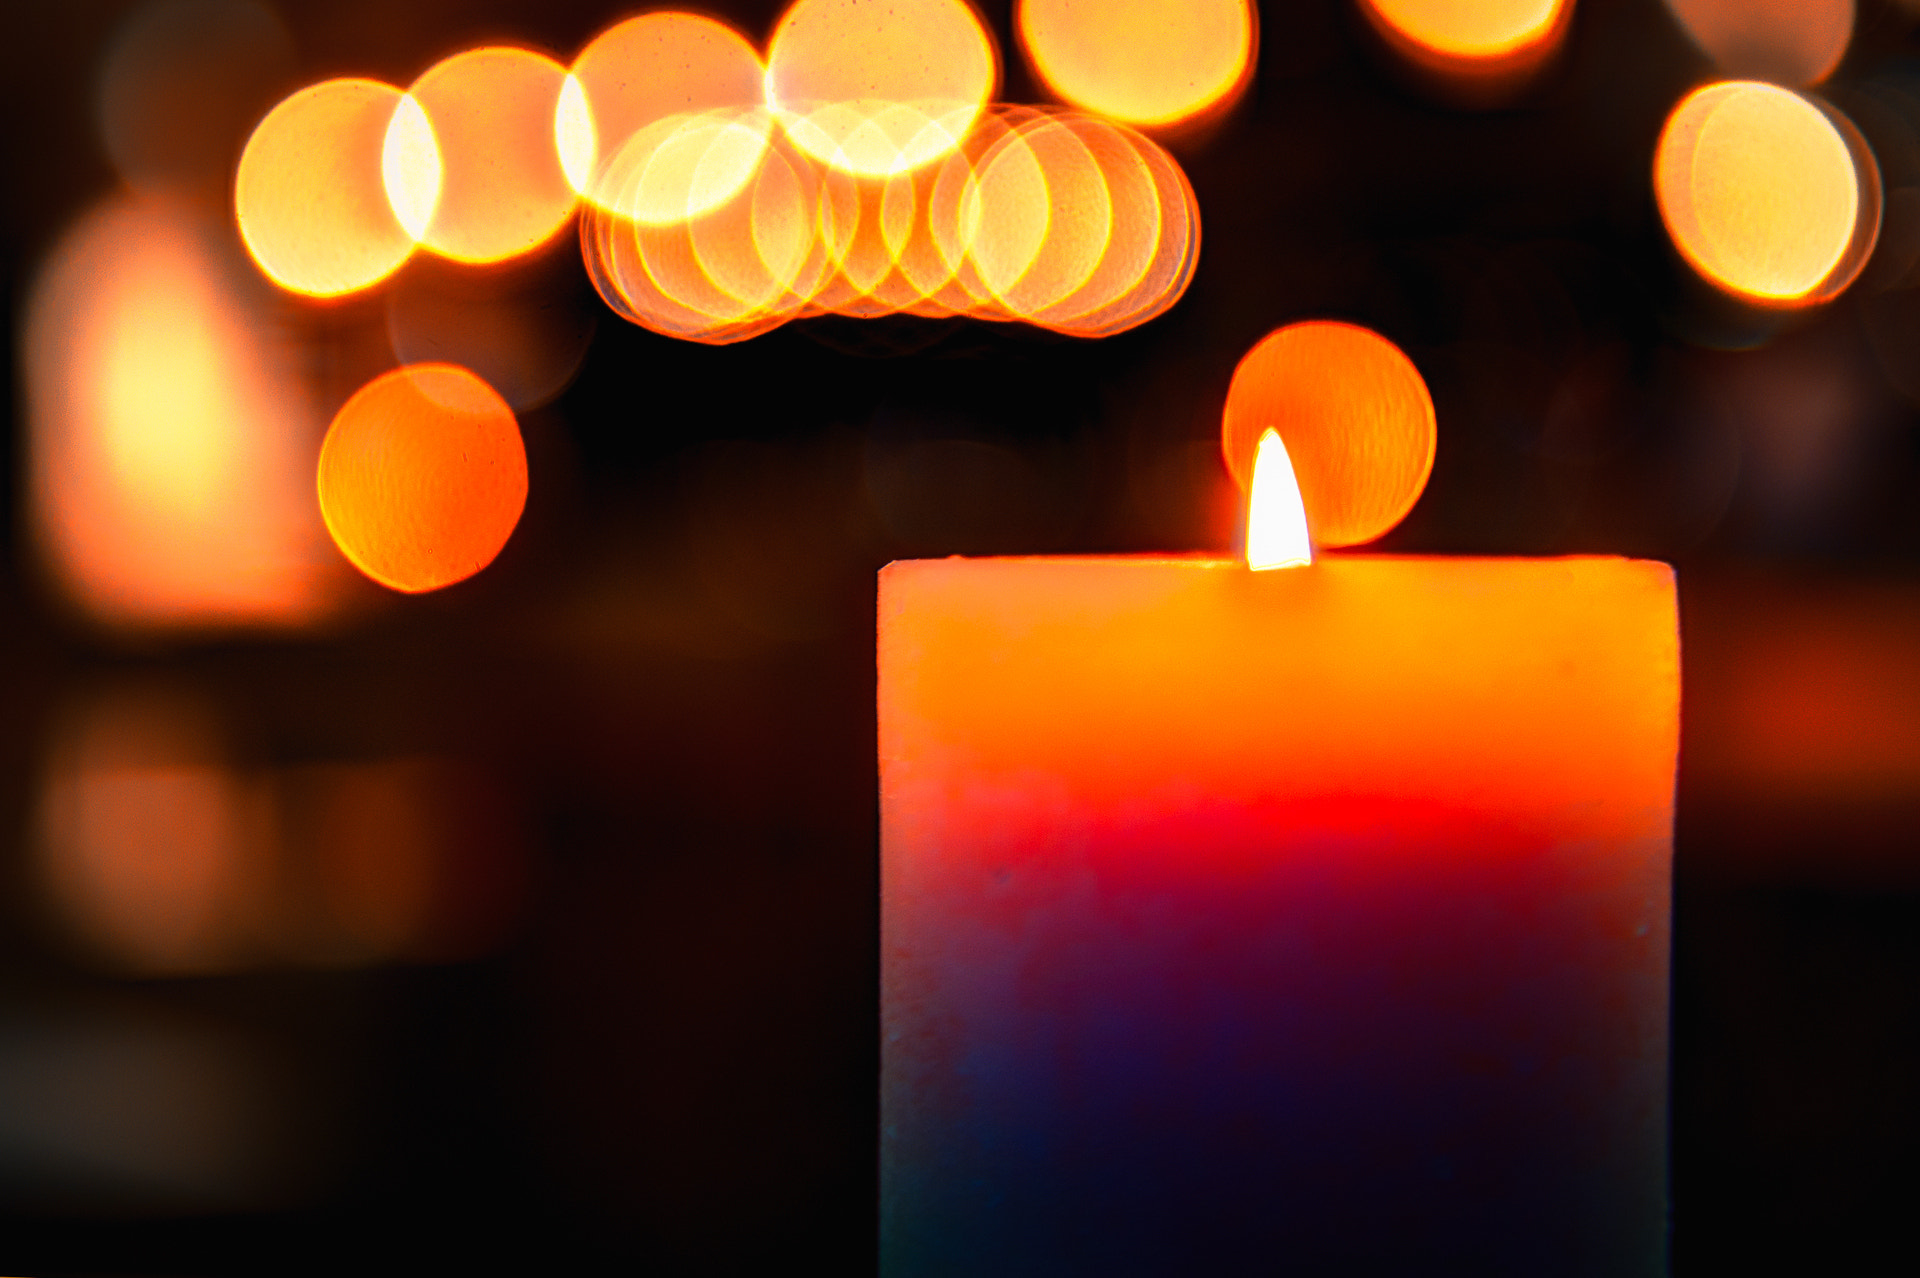 Photograph Candlelight by Ernst Gamauf on 500px